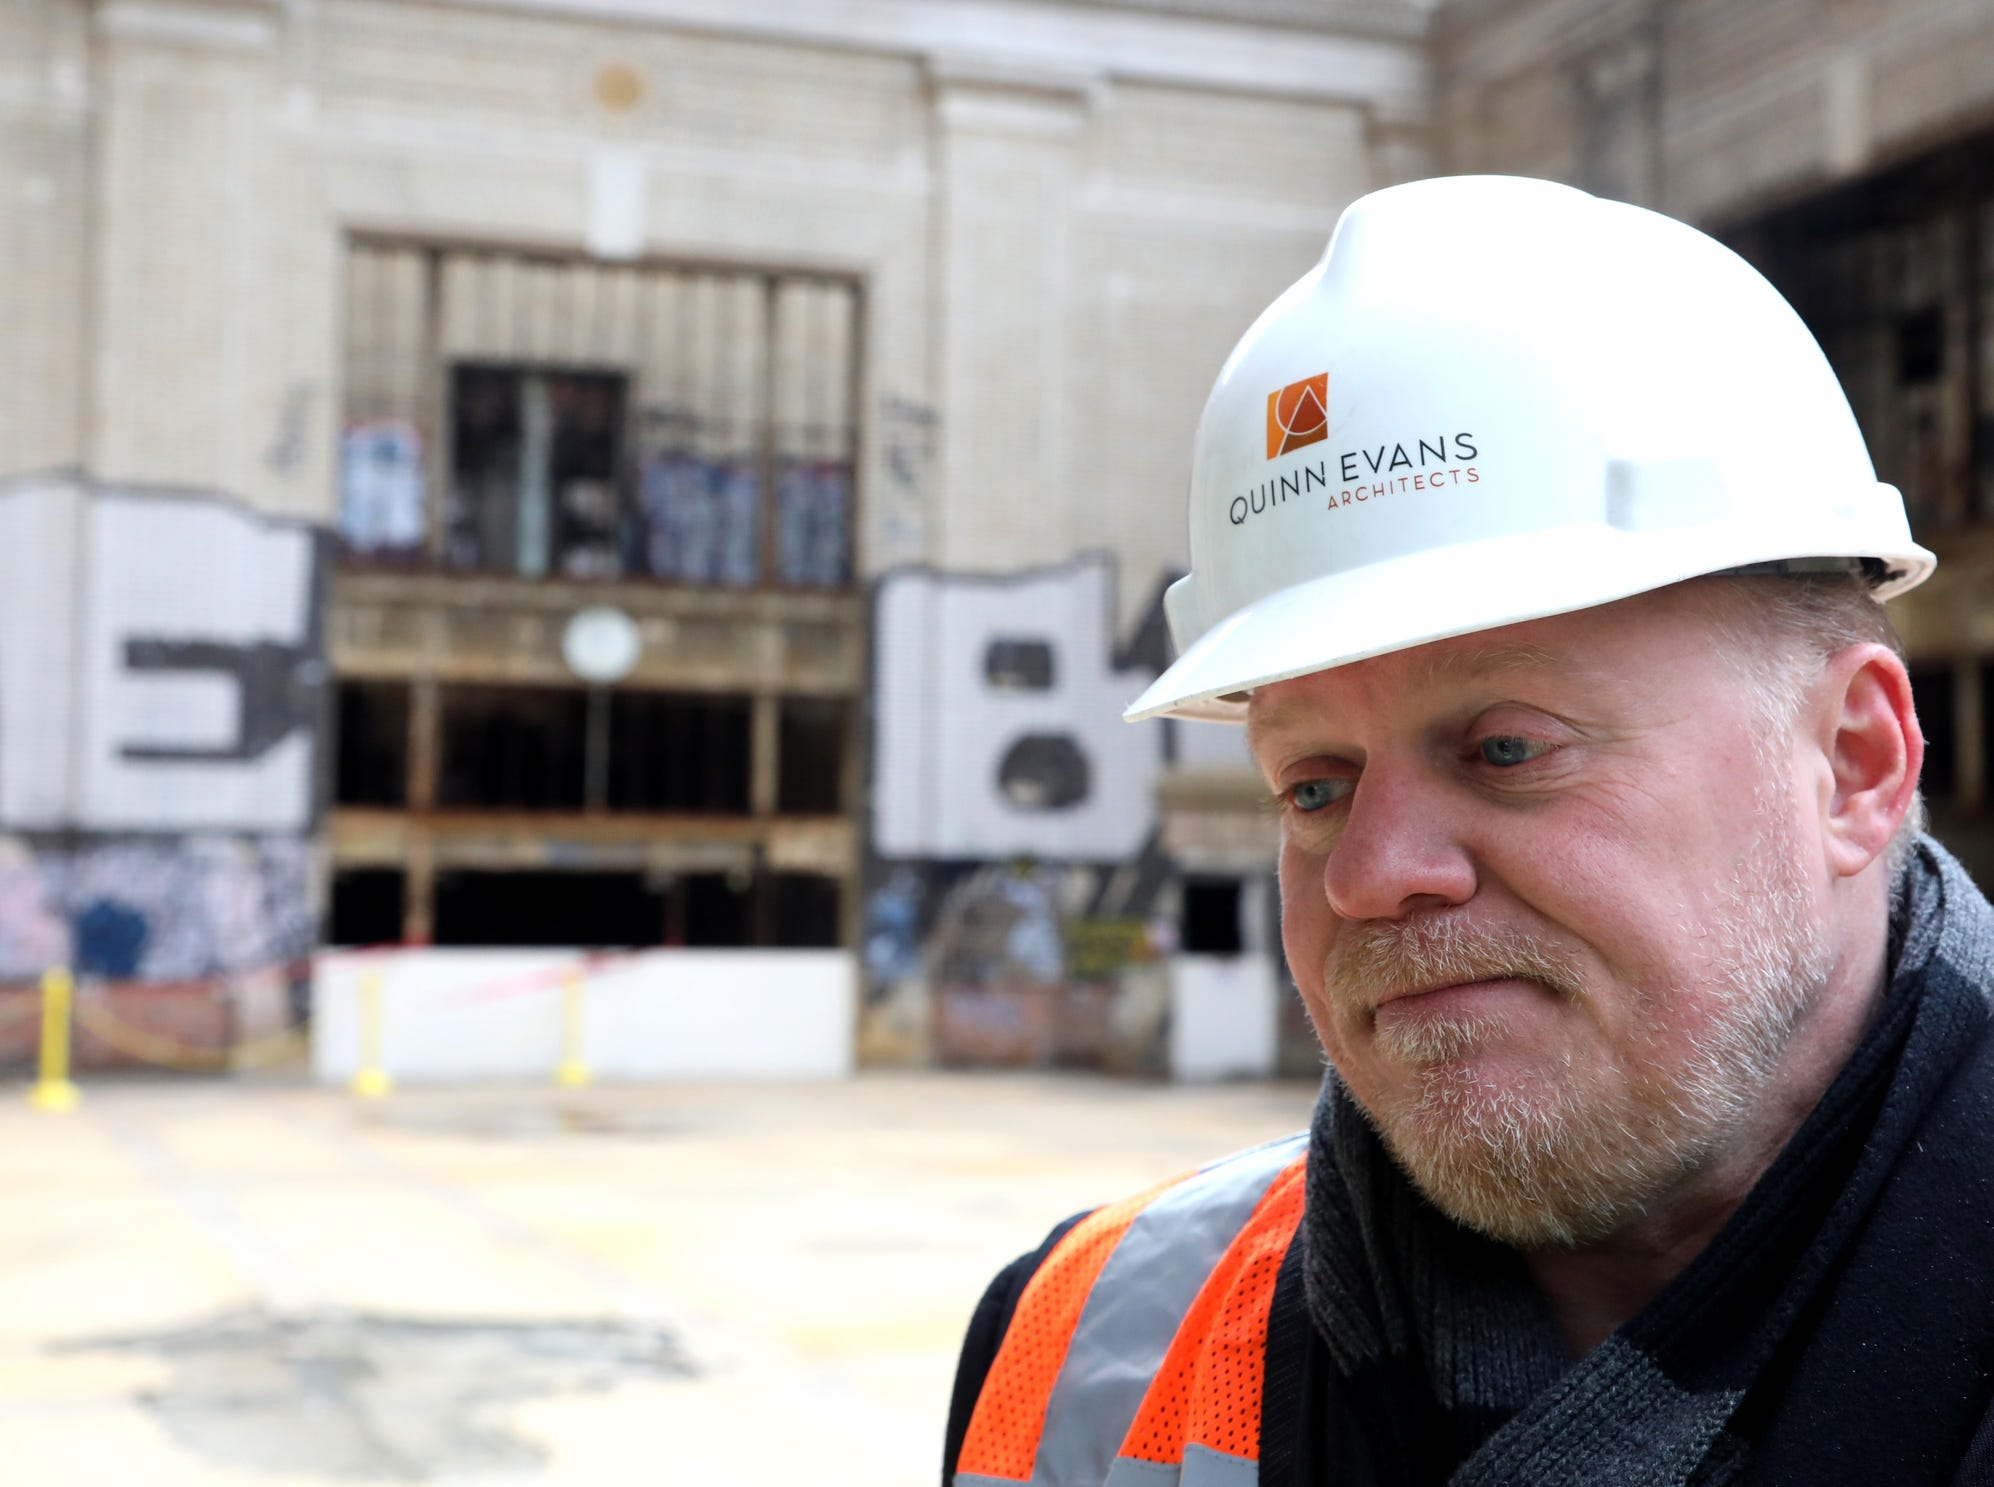 Richard Hess, from Quinn Evans Architects, talks with the media during a tour of Michigan Central Station in Detroit on Tuesday, December 4, 2018.